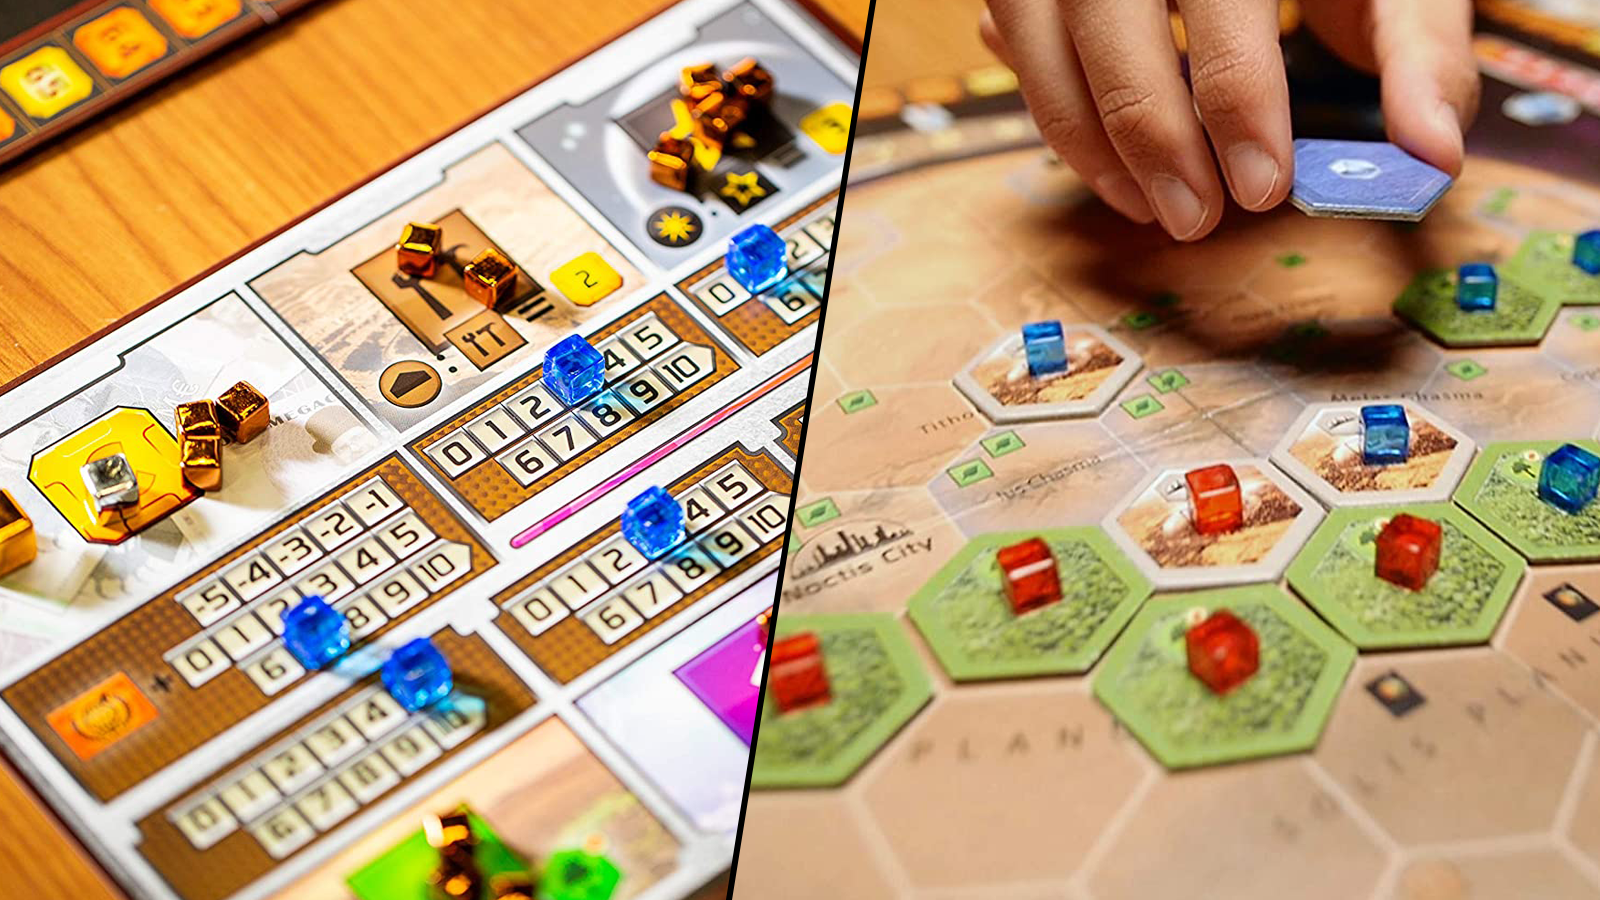 Two views of Terraforming Mars board game components